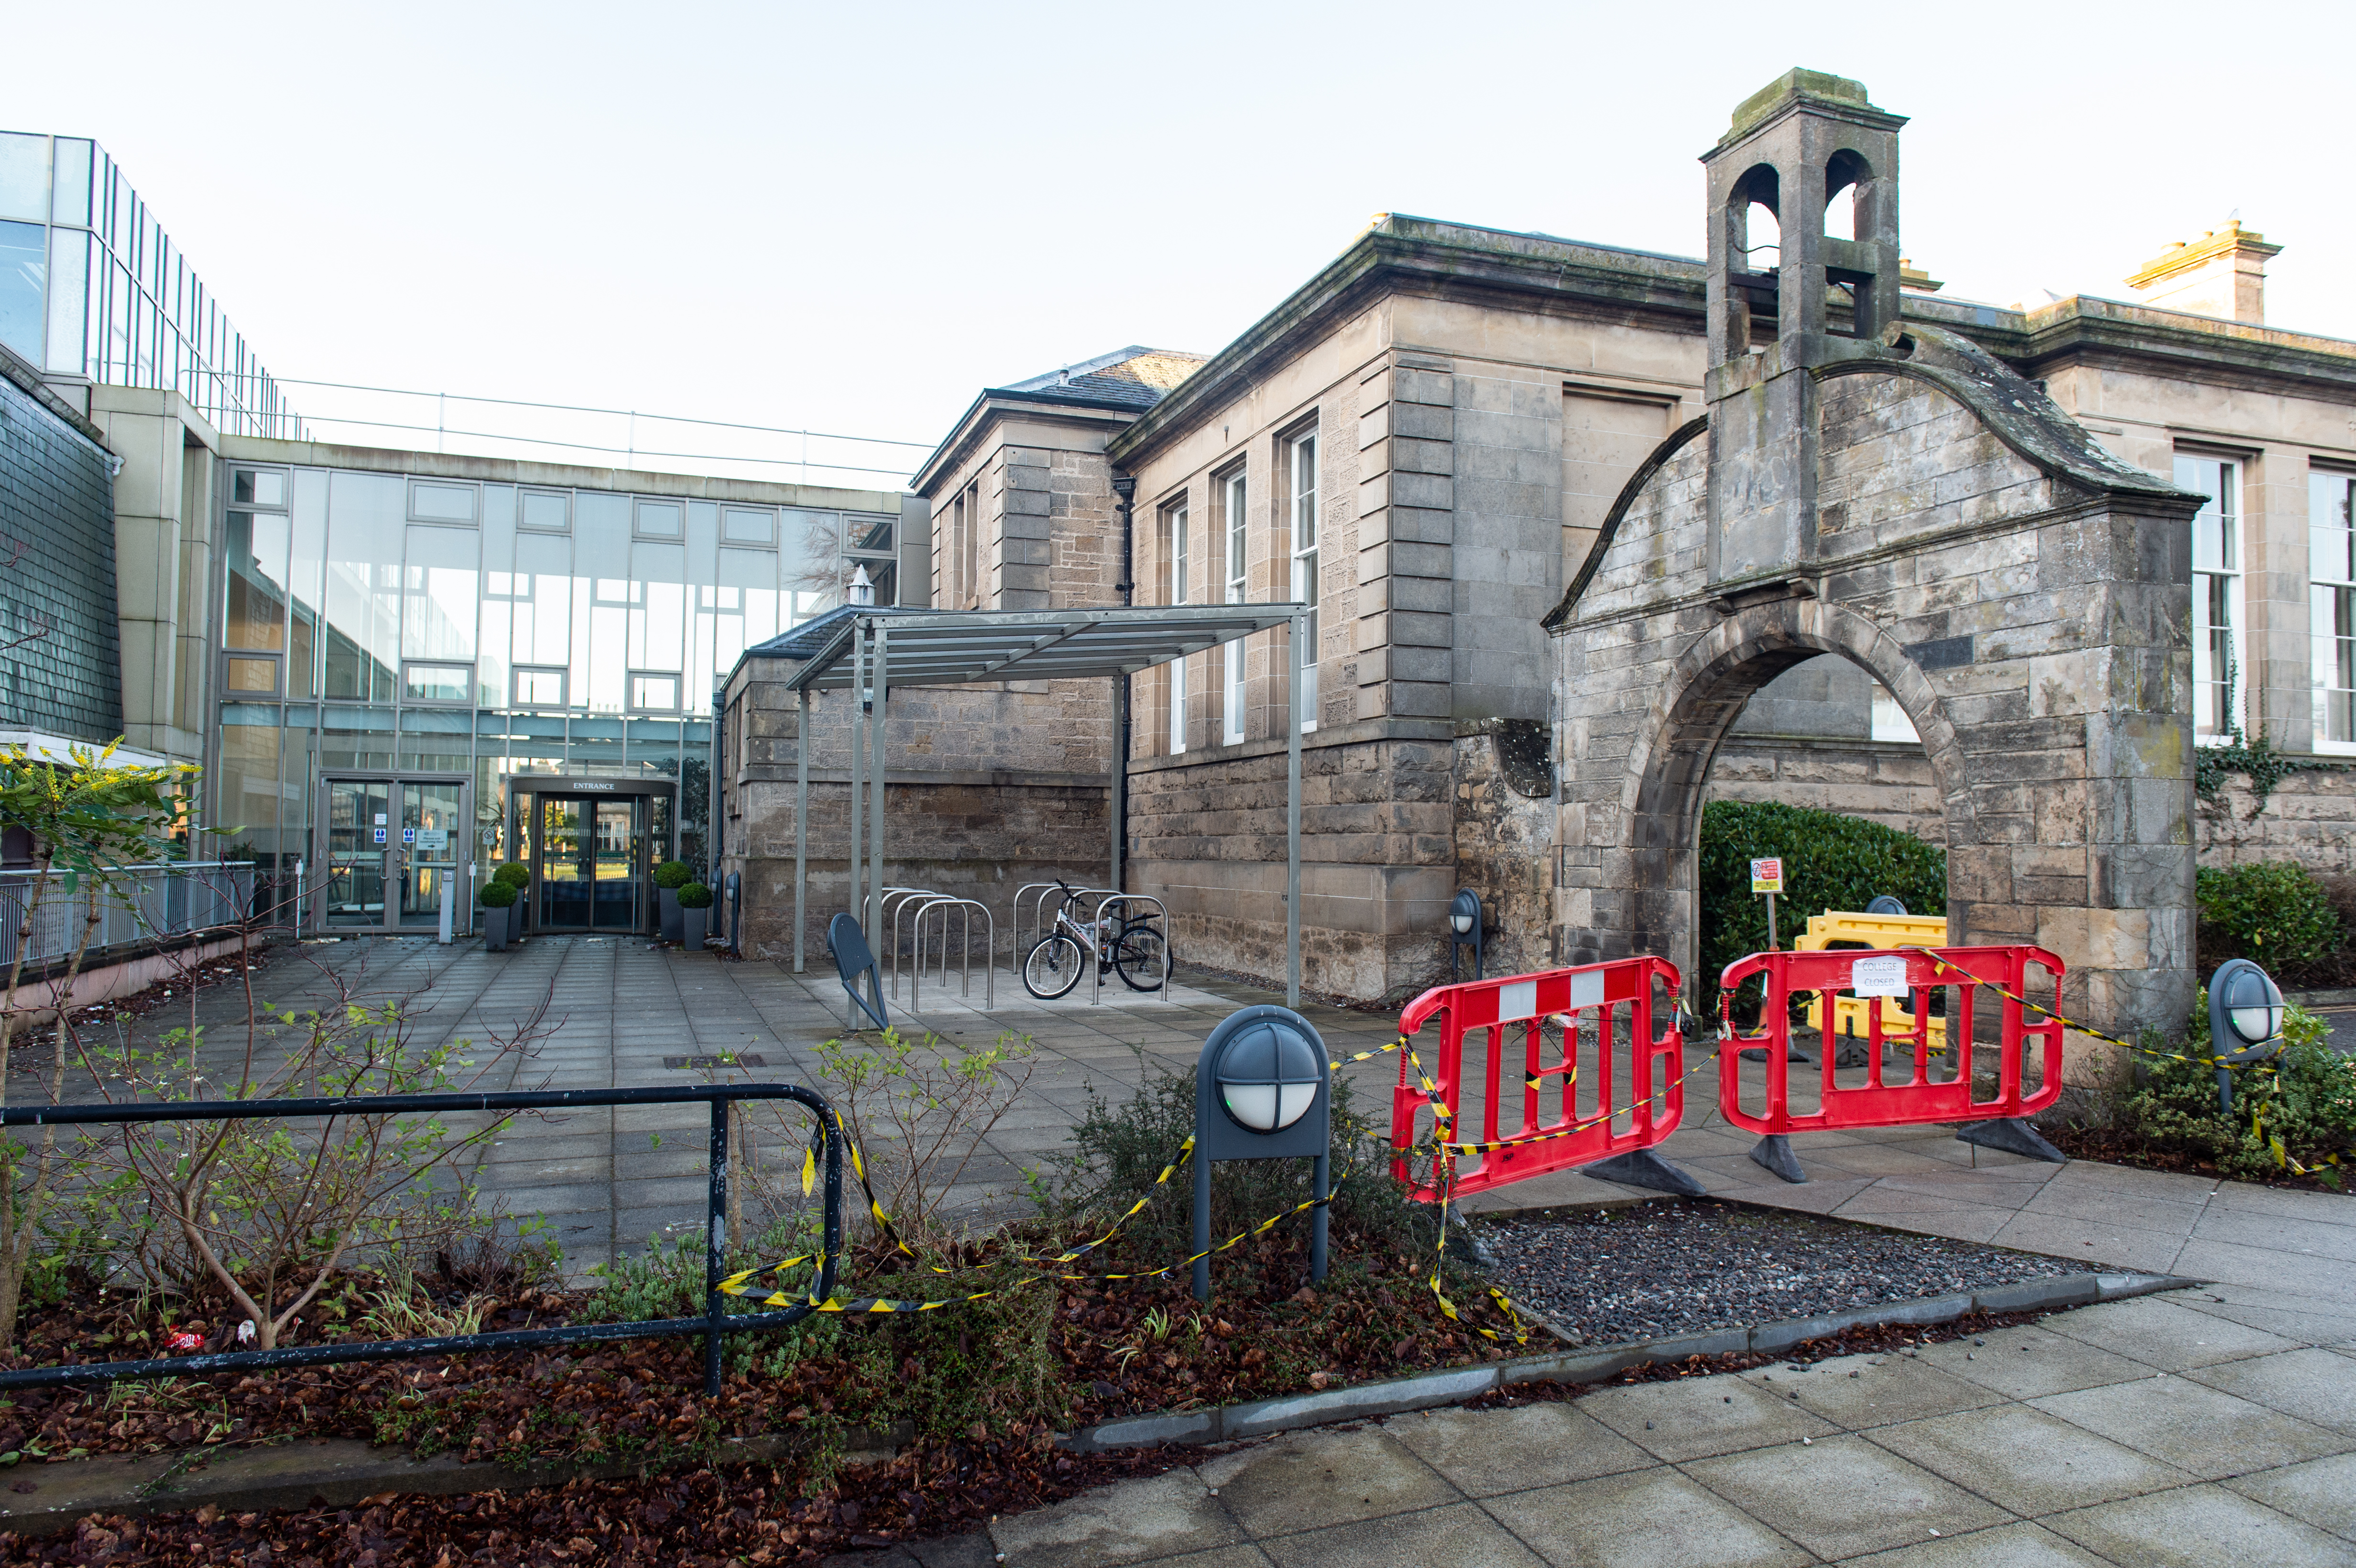 Pictures by JASON HEDGES     Pictures show Moray College UHI as closed today 14/01/2020 due to aluminium roof sheeting displacement from storm Brendan. Pictures by JASON HEDGES